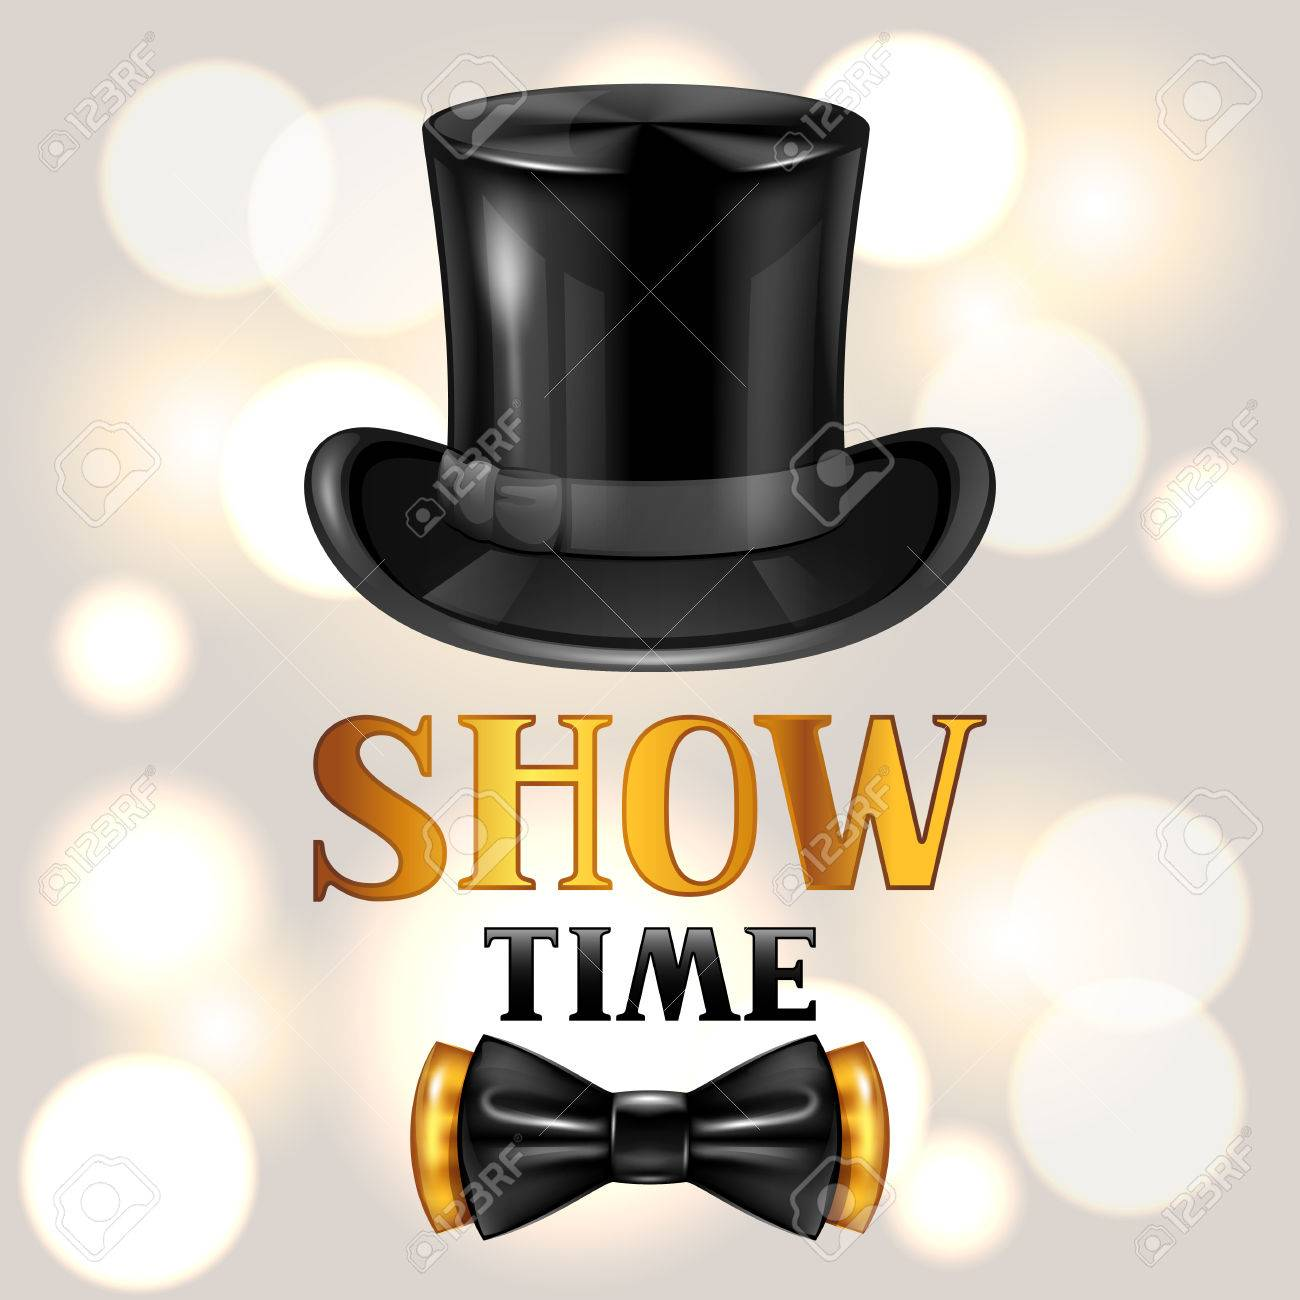 Show time card with cylinder and bow tie. Invitation to entertainment. - 67193158